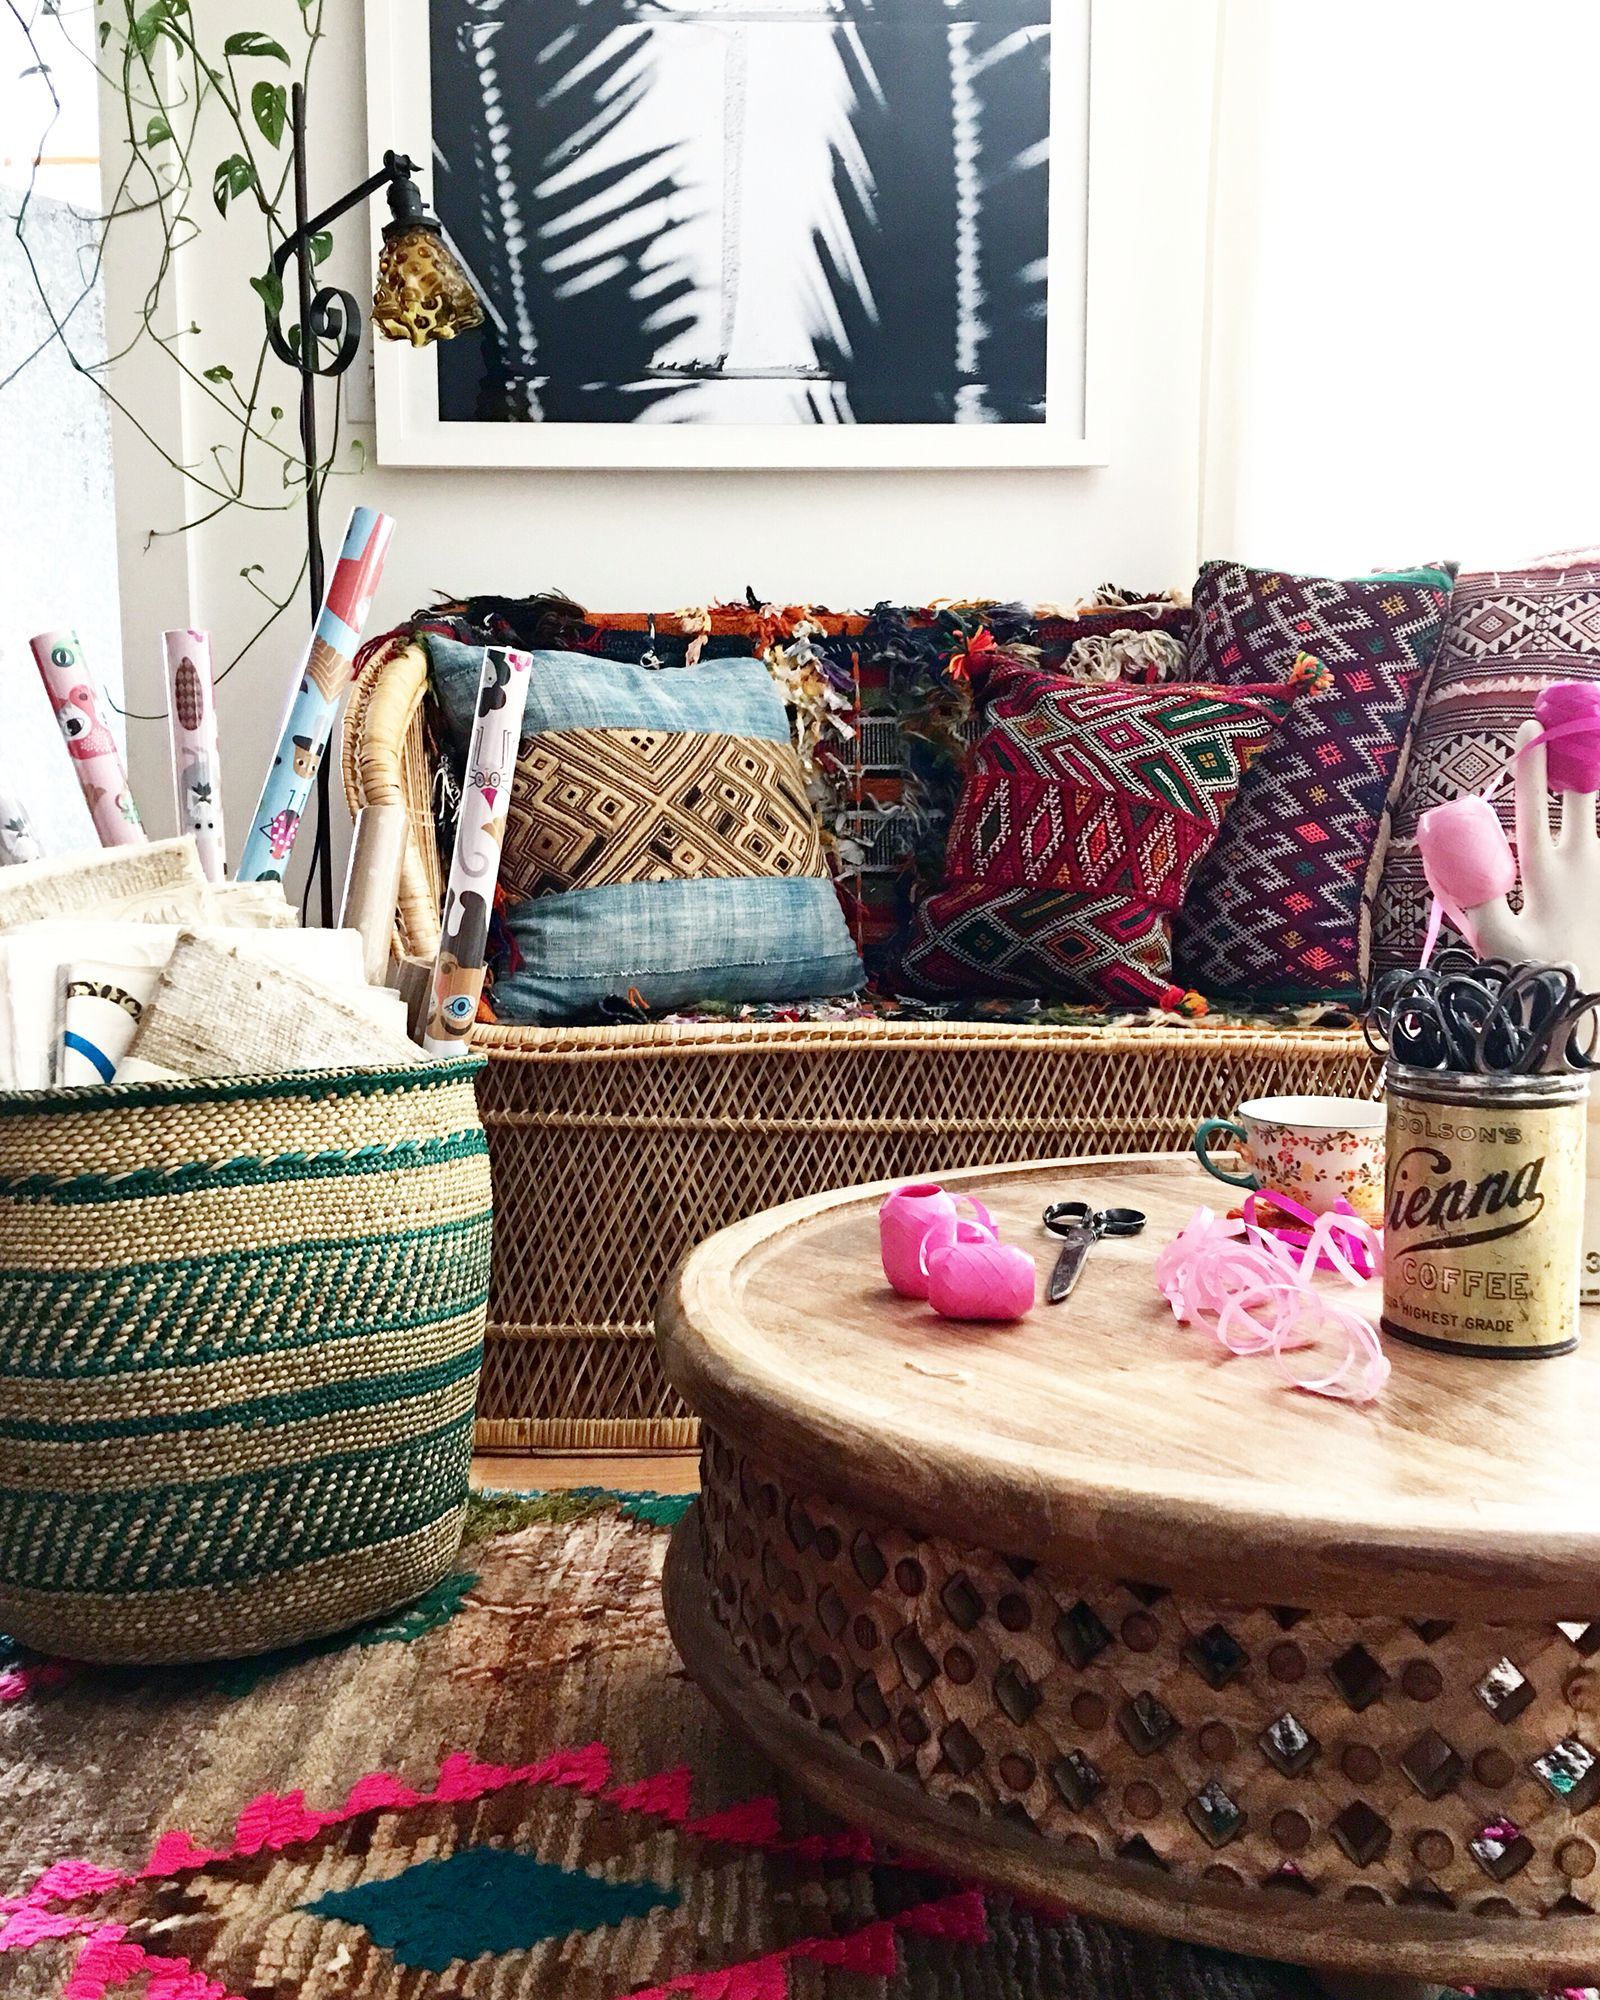 Interior Boho Design Living Room Home Decor: Boho Holiday Vibes @fleamarketfab